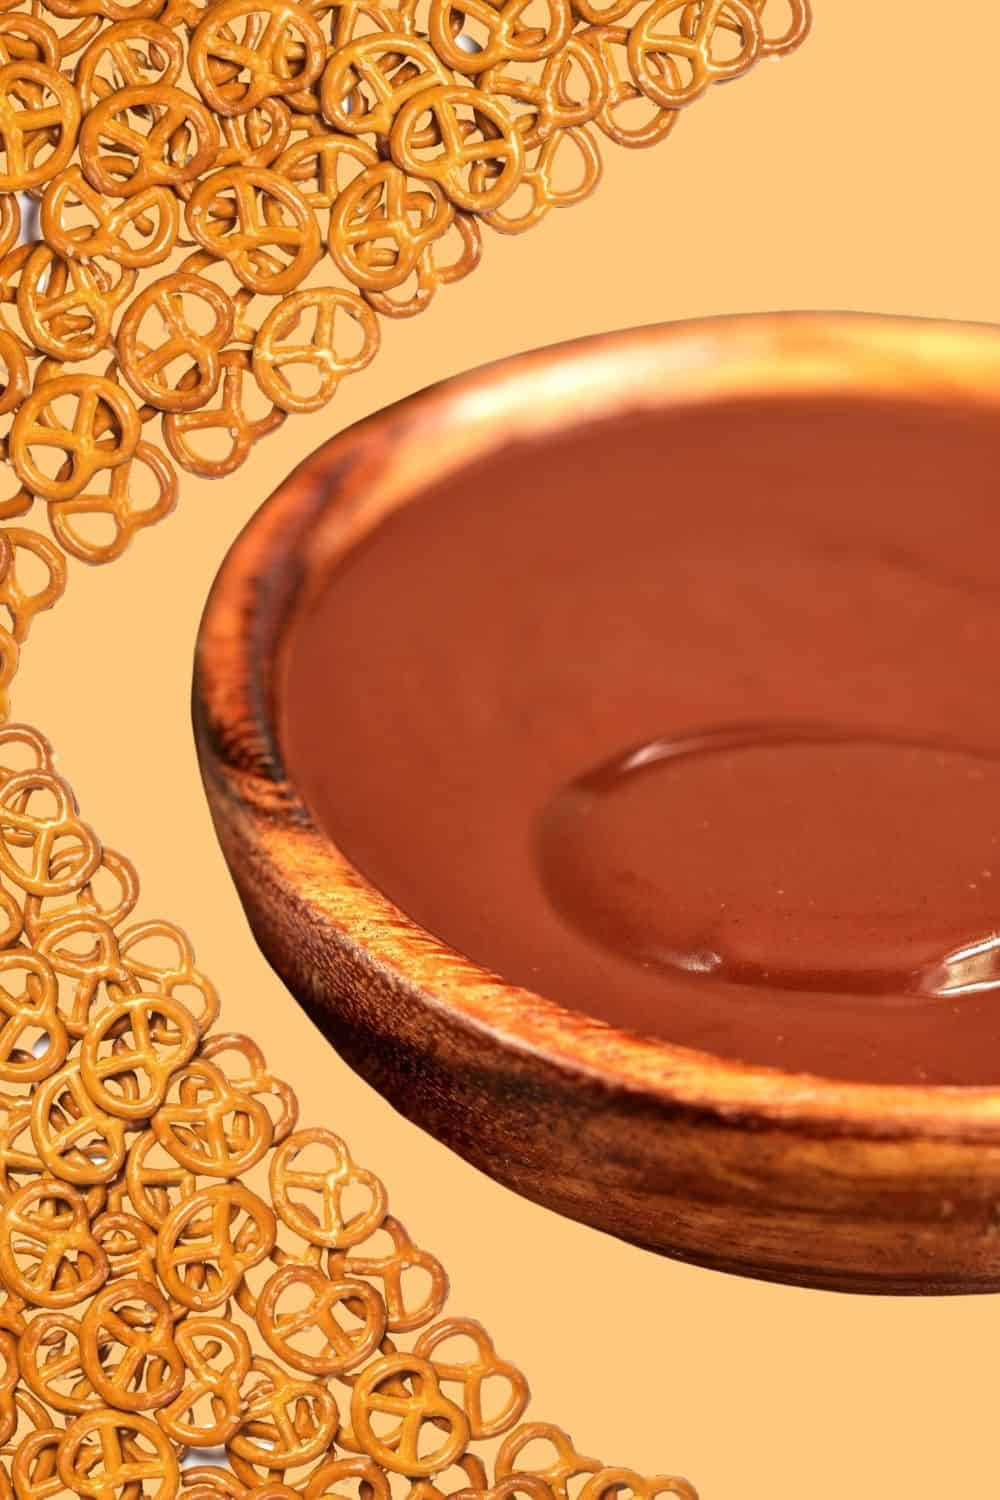 chocolate ganache for dipping with pretzels